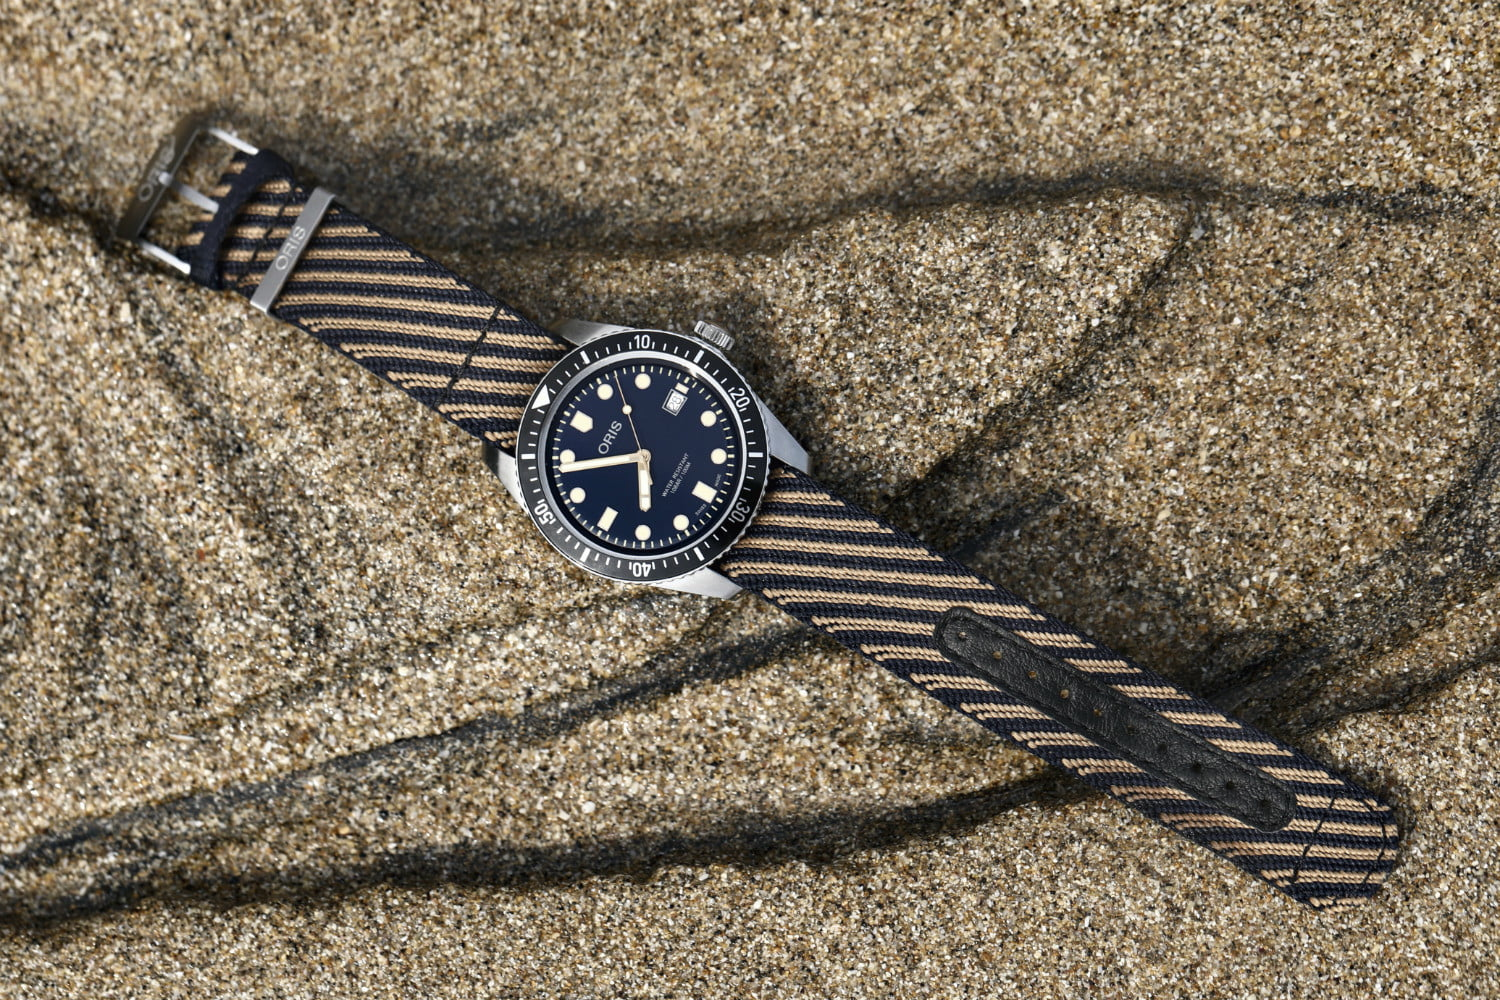 radical and stylish oris watch strap is made from recycled plastics